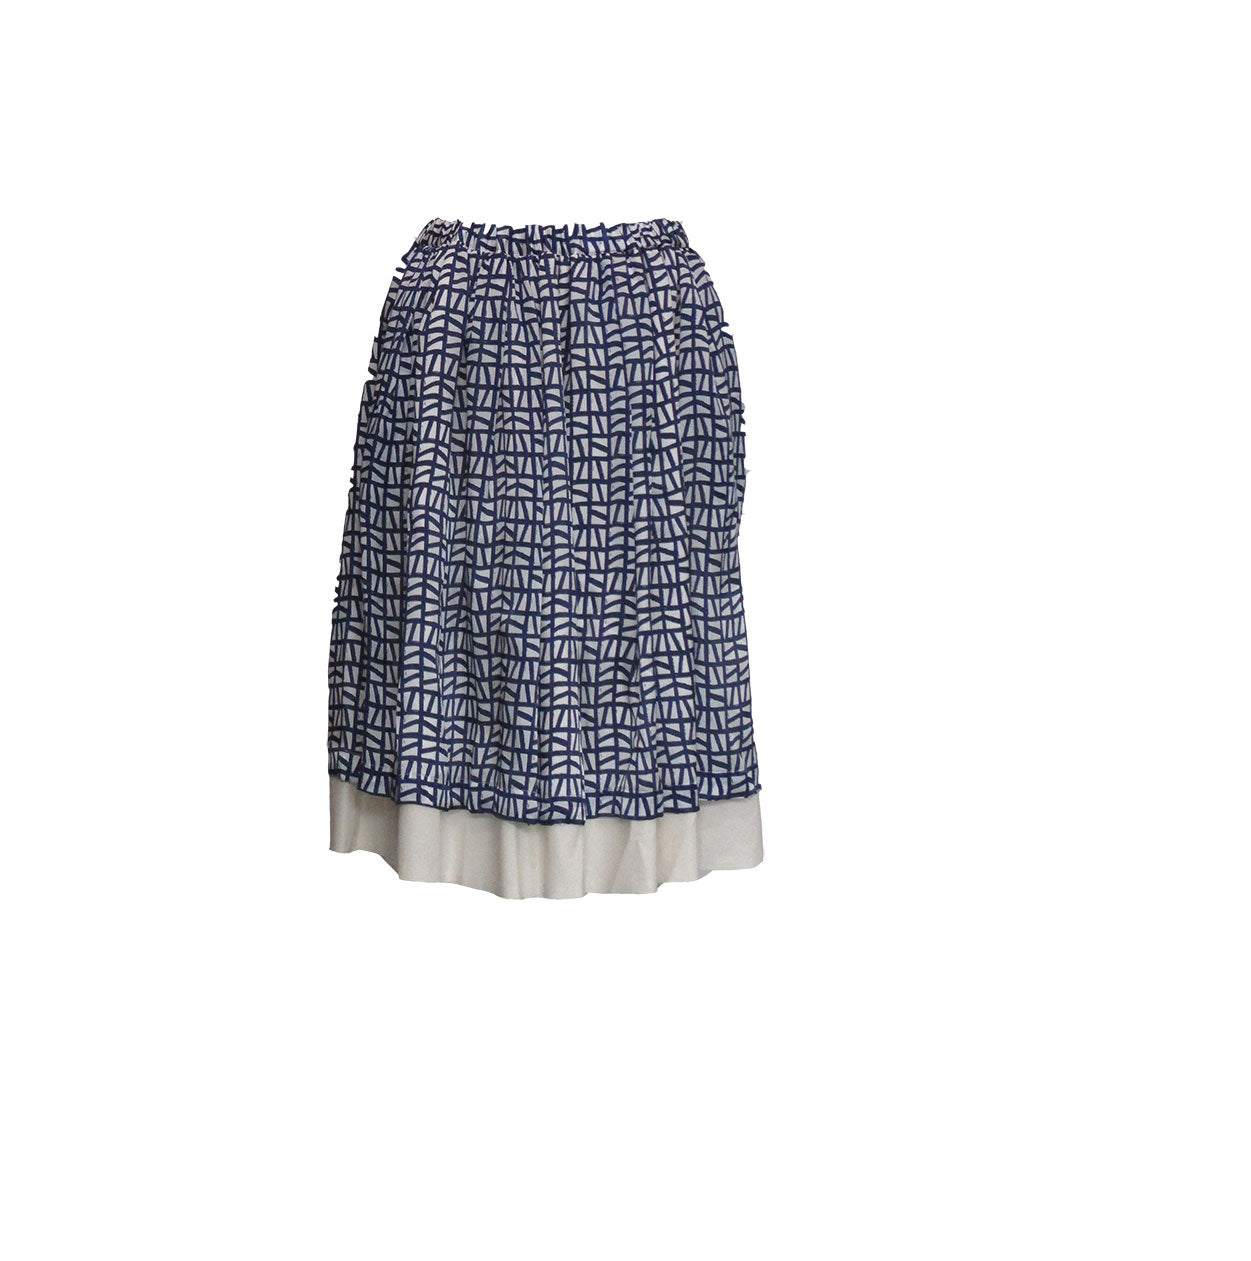 LAYERED SKIRT - COMME des GARCONS